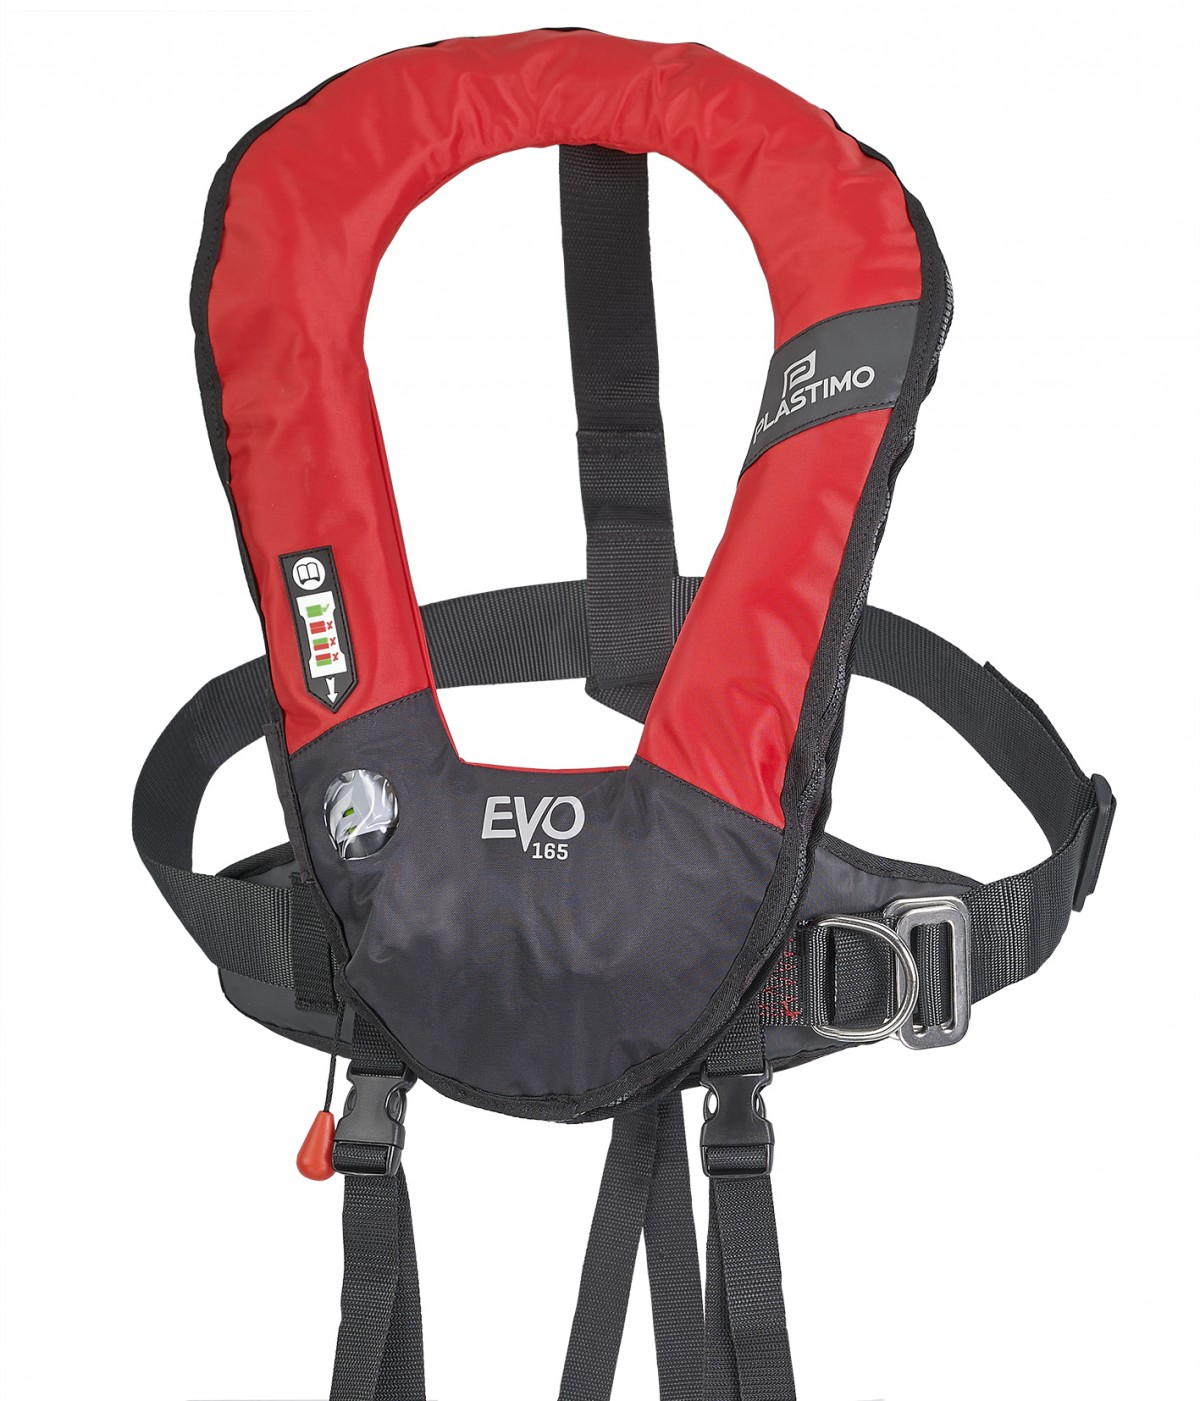 EVO lifejacket with harness